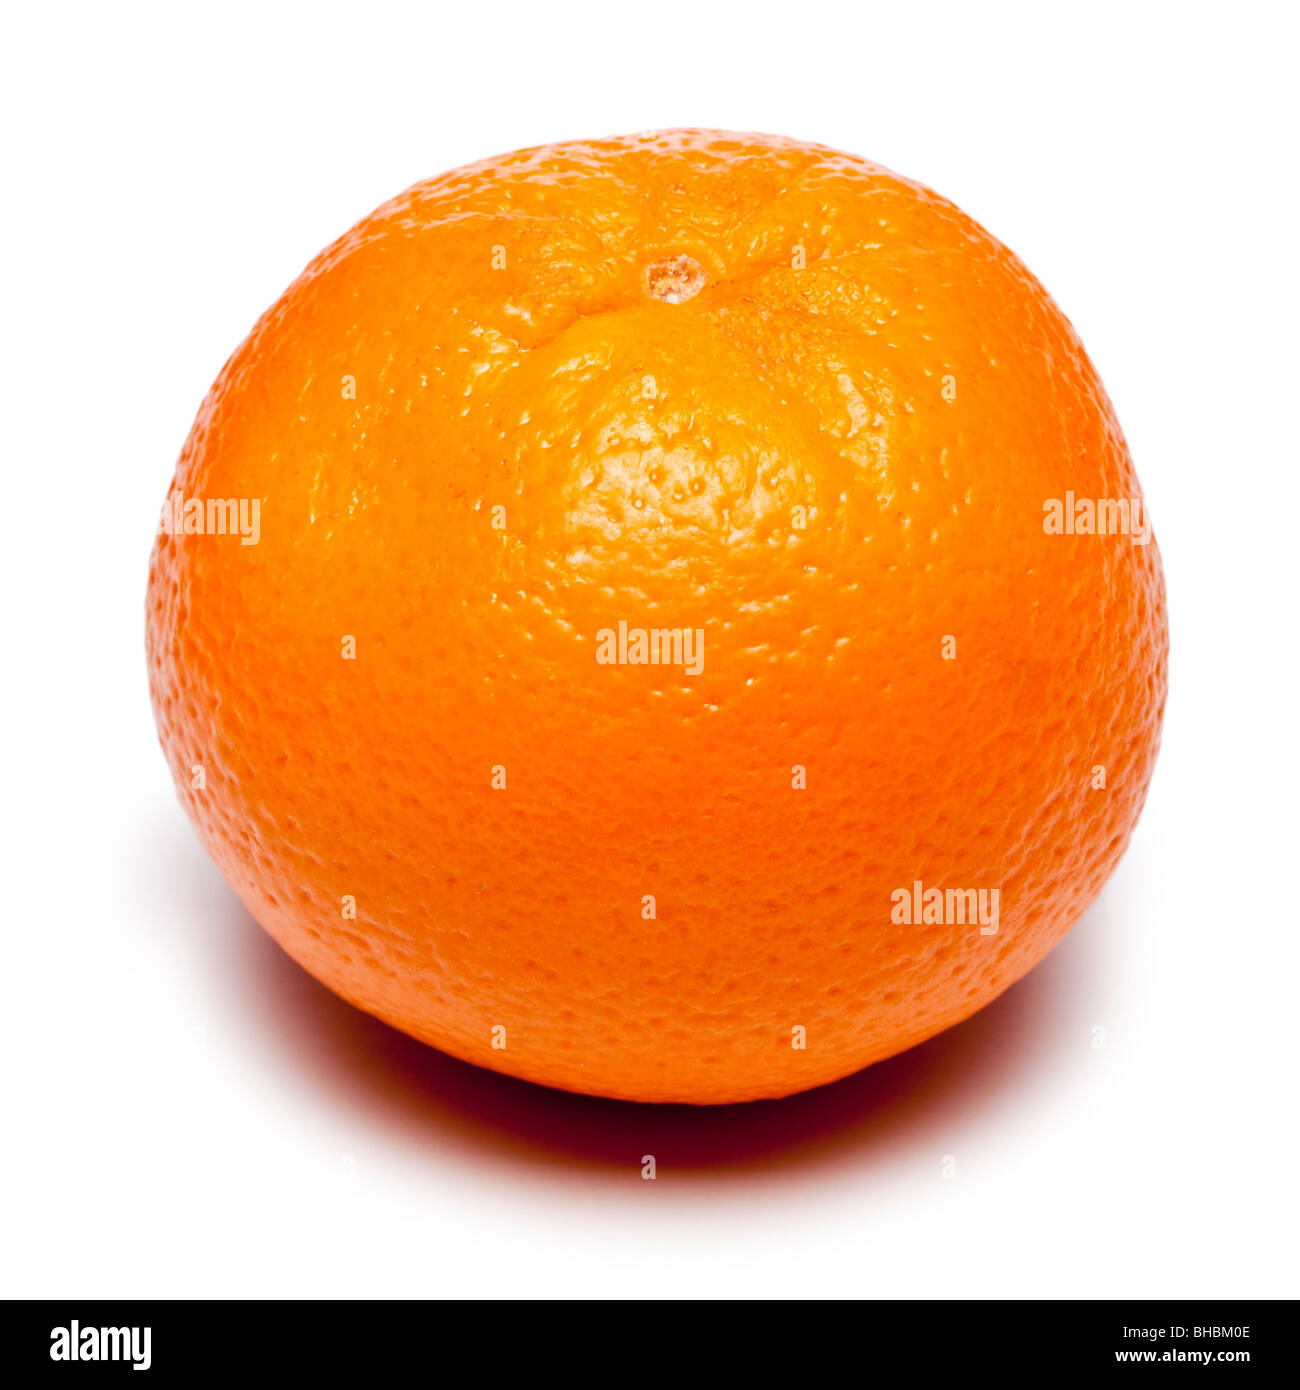 Orange - Stock Image